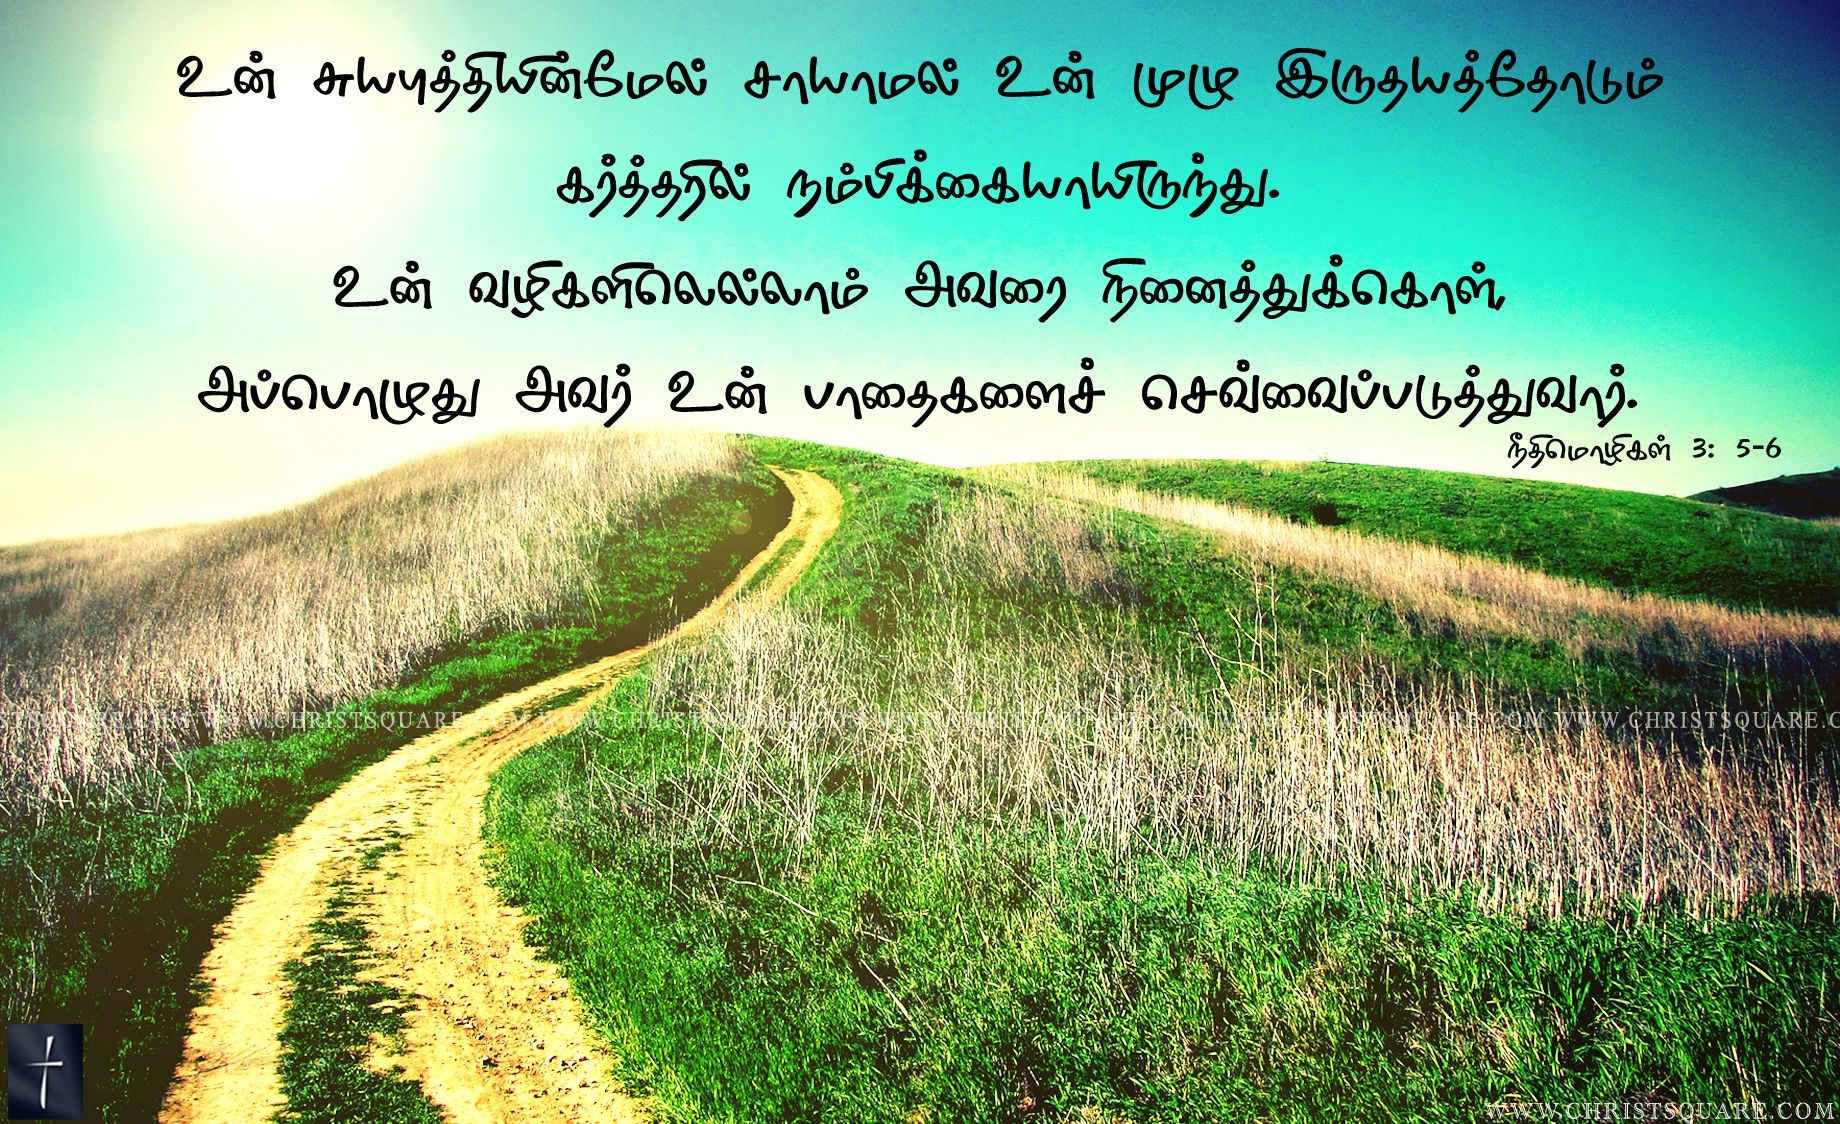 tamil bible wallpaper,tamil bible words,tamil bible words image